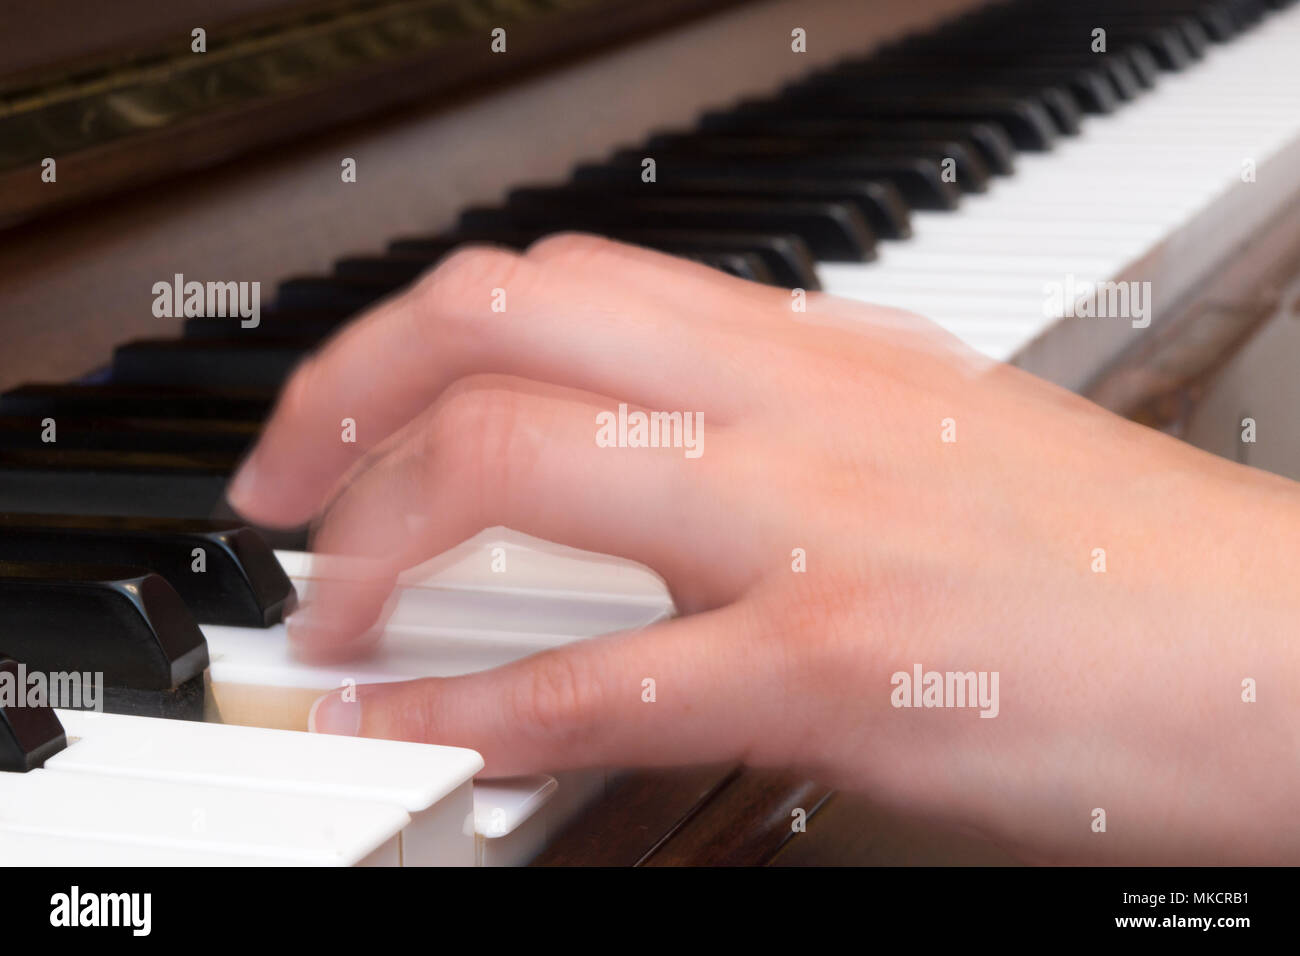 Close up of a woman's hand playing piano with motion blur - Stock Image